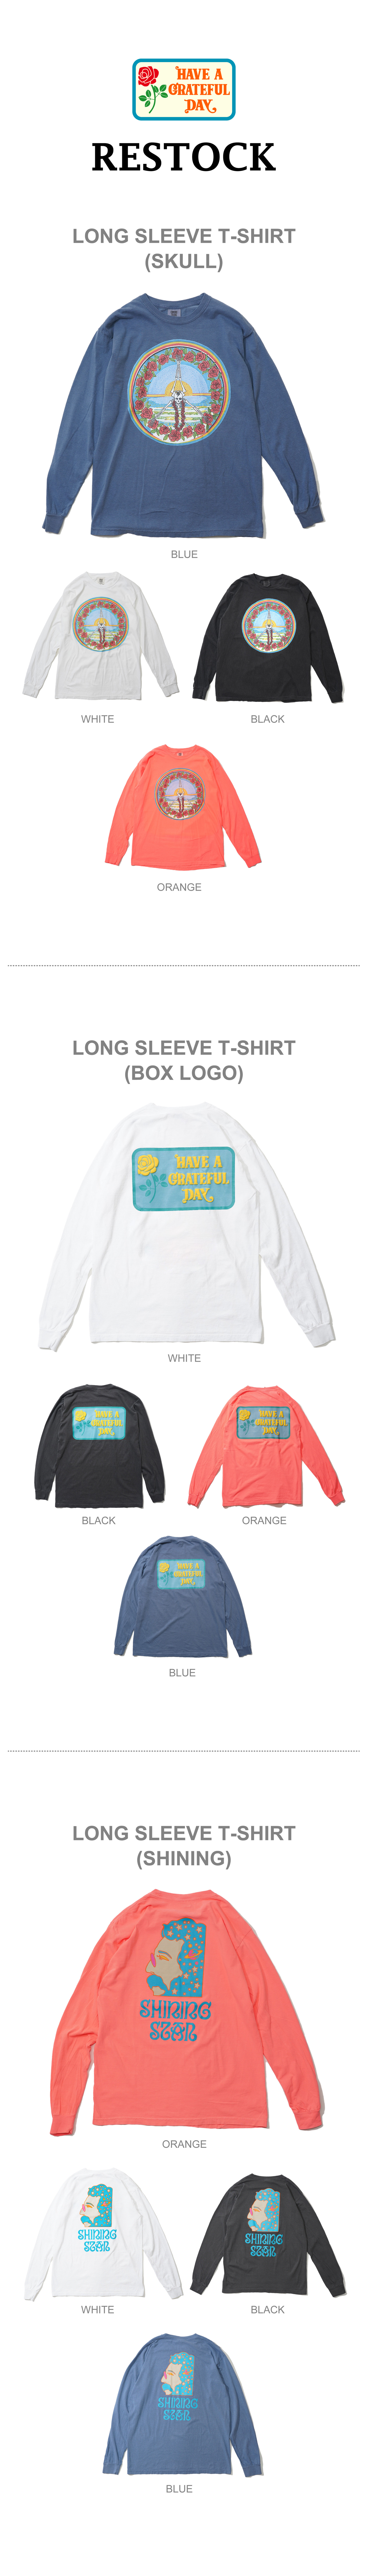 【HAVE A GRATEFUL DAY】LONG SLEEVE T-SHIRT を再入荷しました